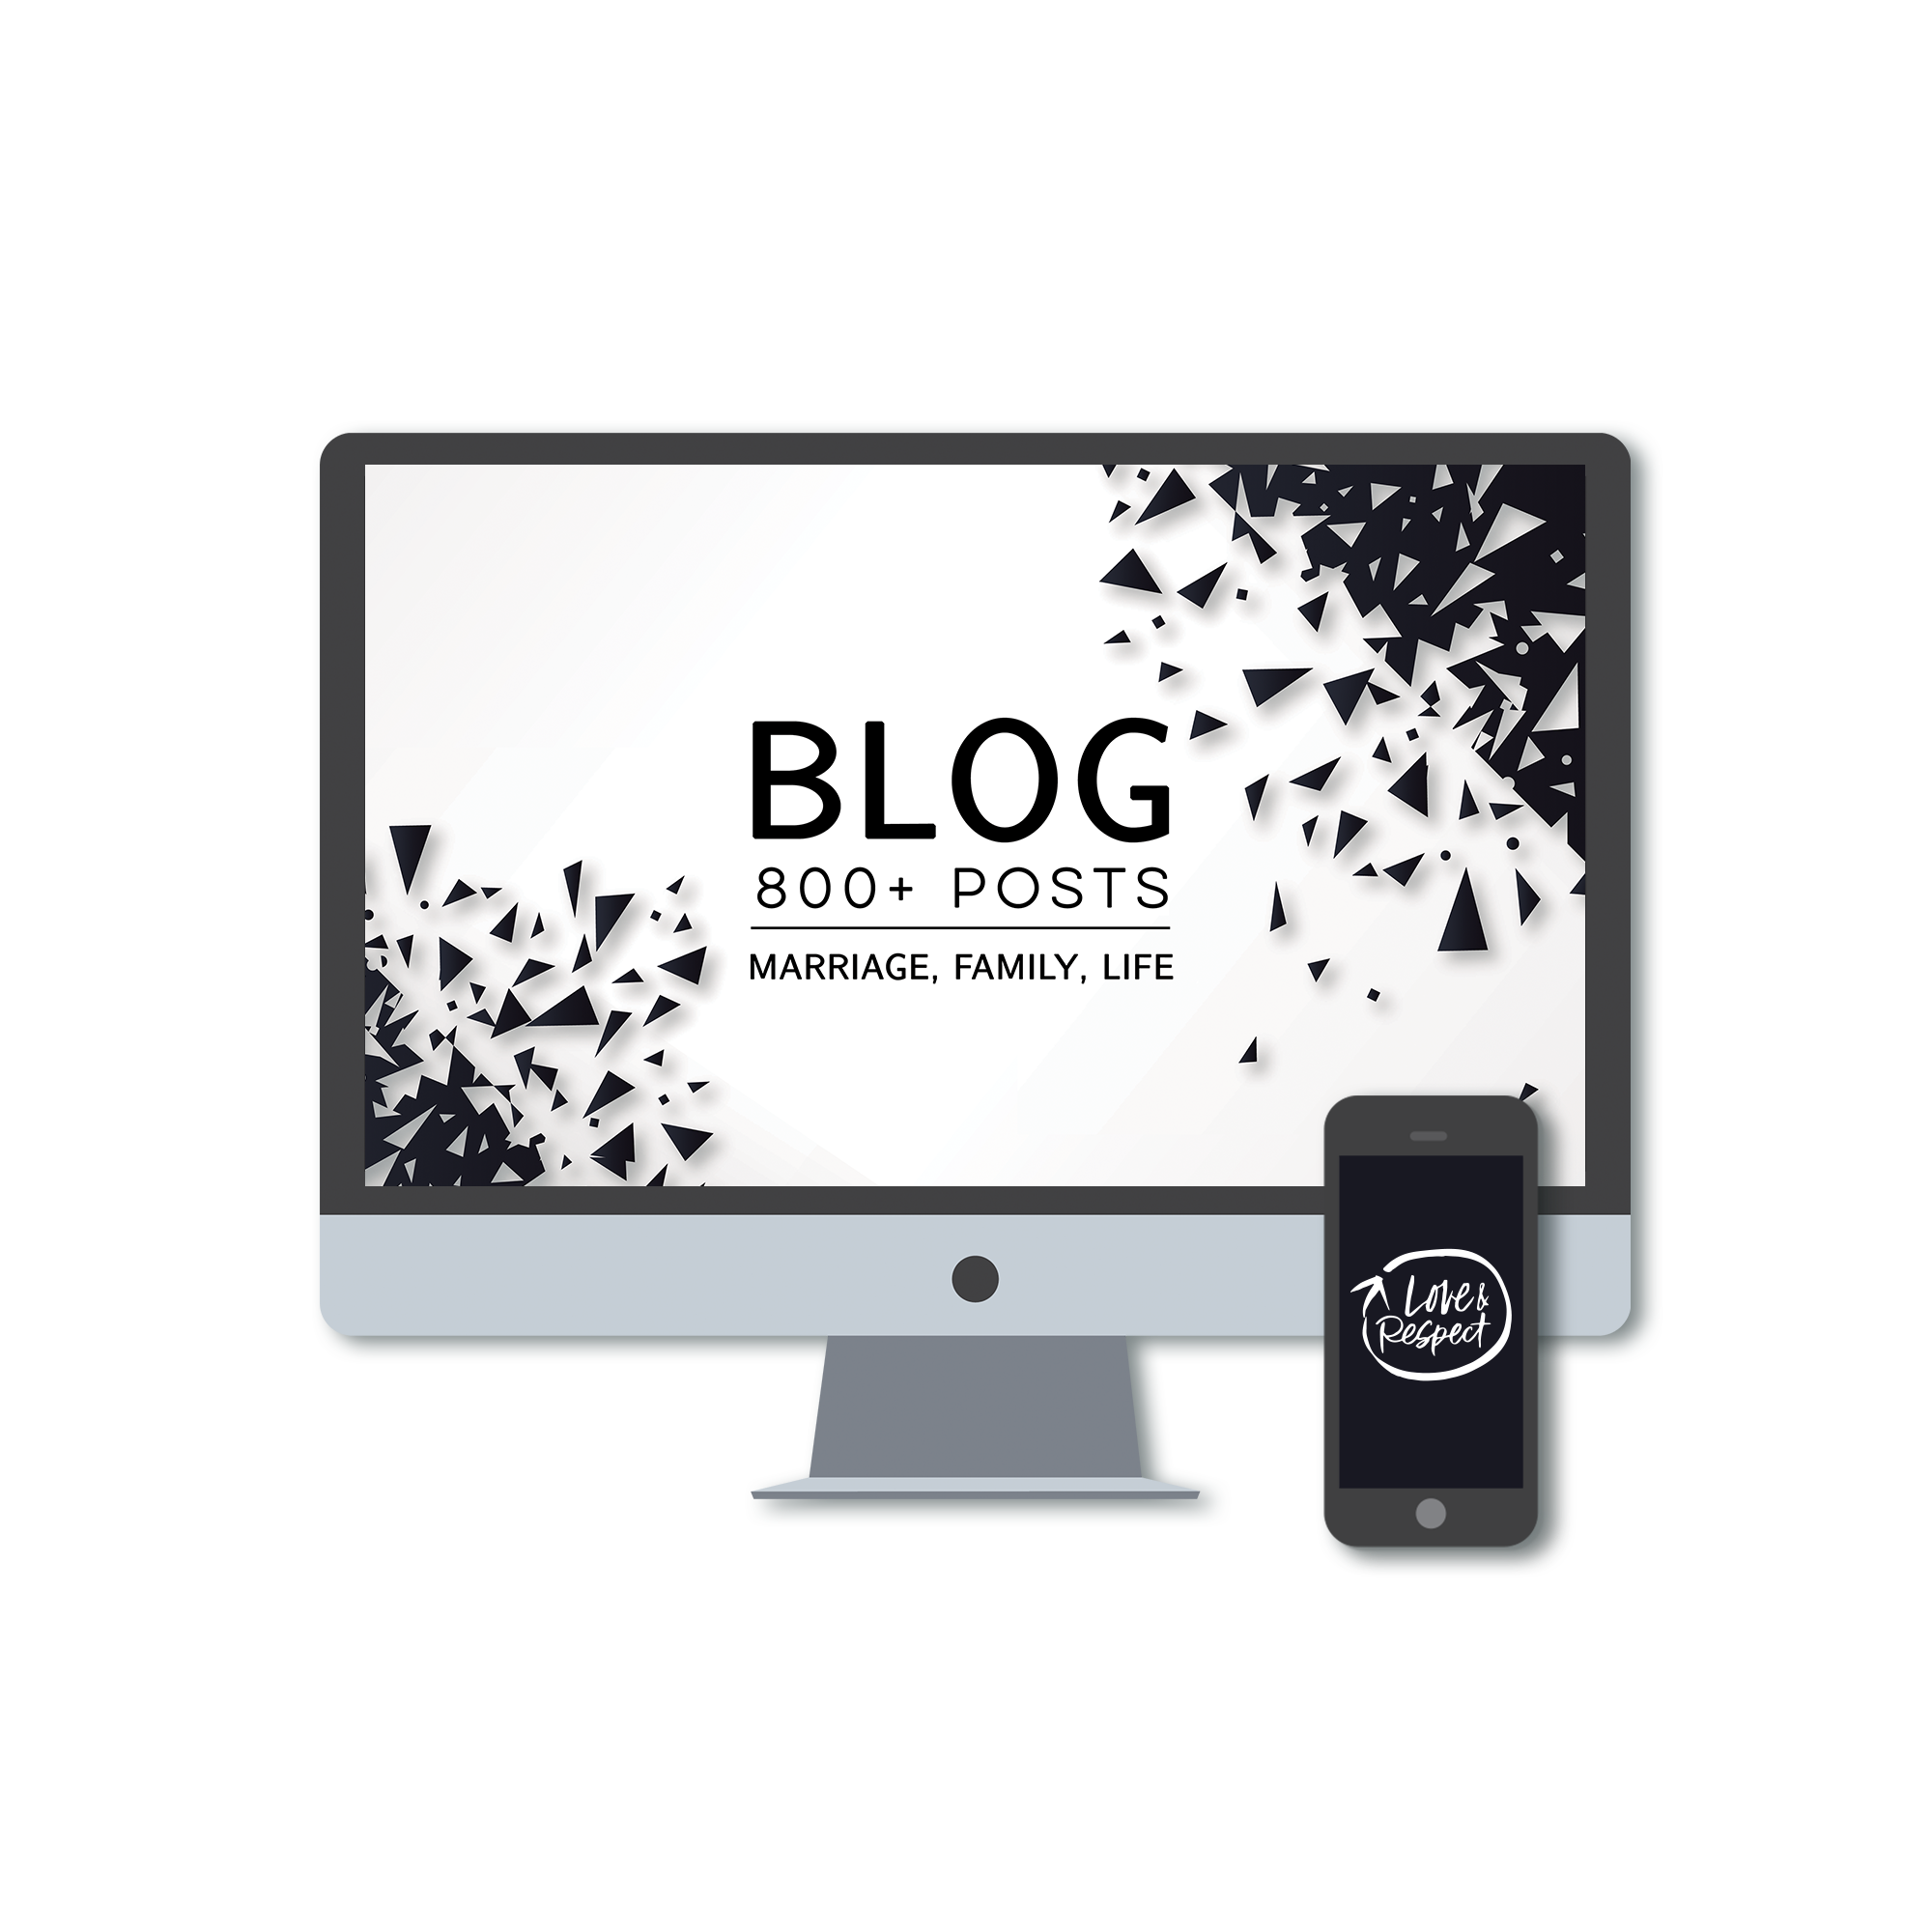 Blog - 800+ Posts! - From Marriage and Family, to Life and Faith, browse or read hundreds of topics and posts that may speak to a question or concern that you have based on your situation, add to what you have read or seen from Love & Respect, or introduce you to the concepts. We hope you learn and are encouraged through this free resource.